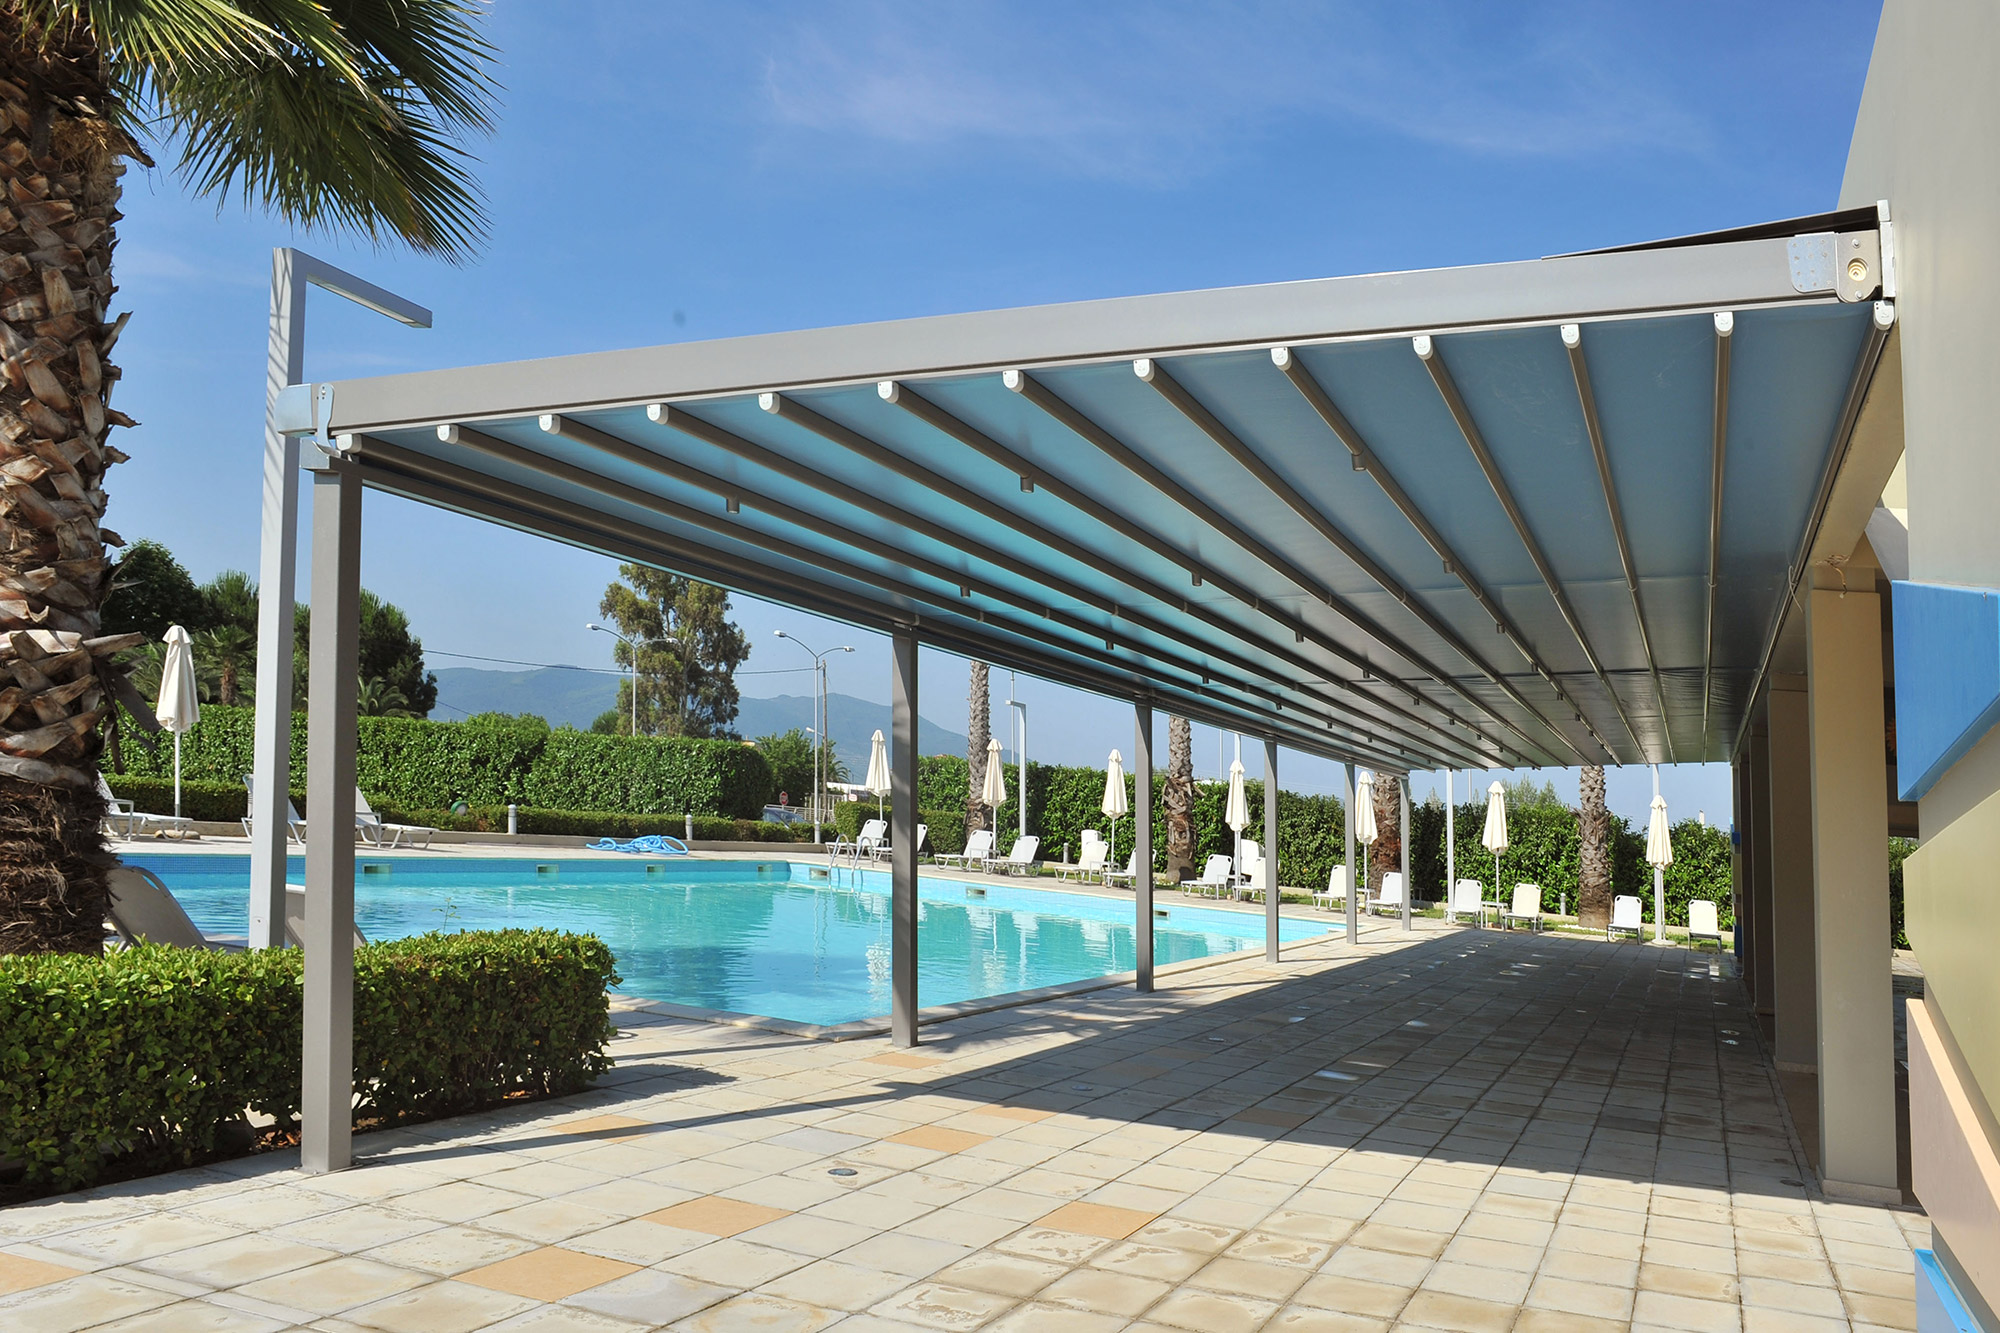 tailor-made shading systems since 1970